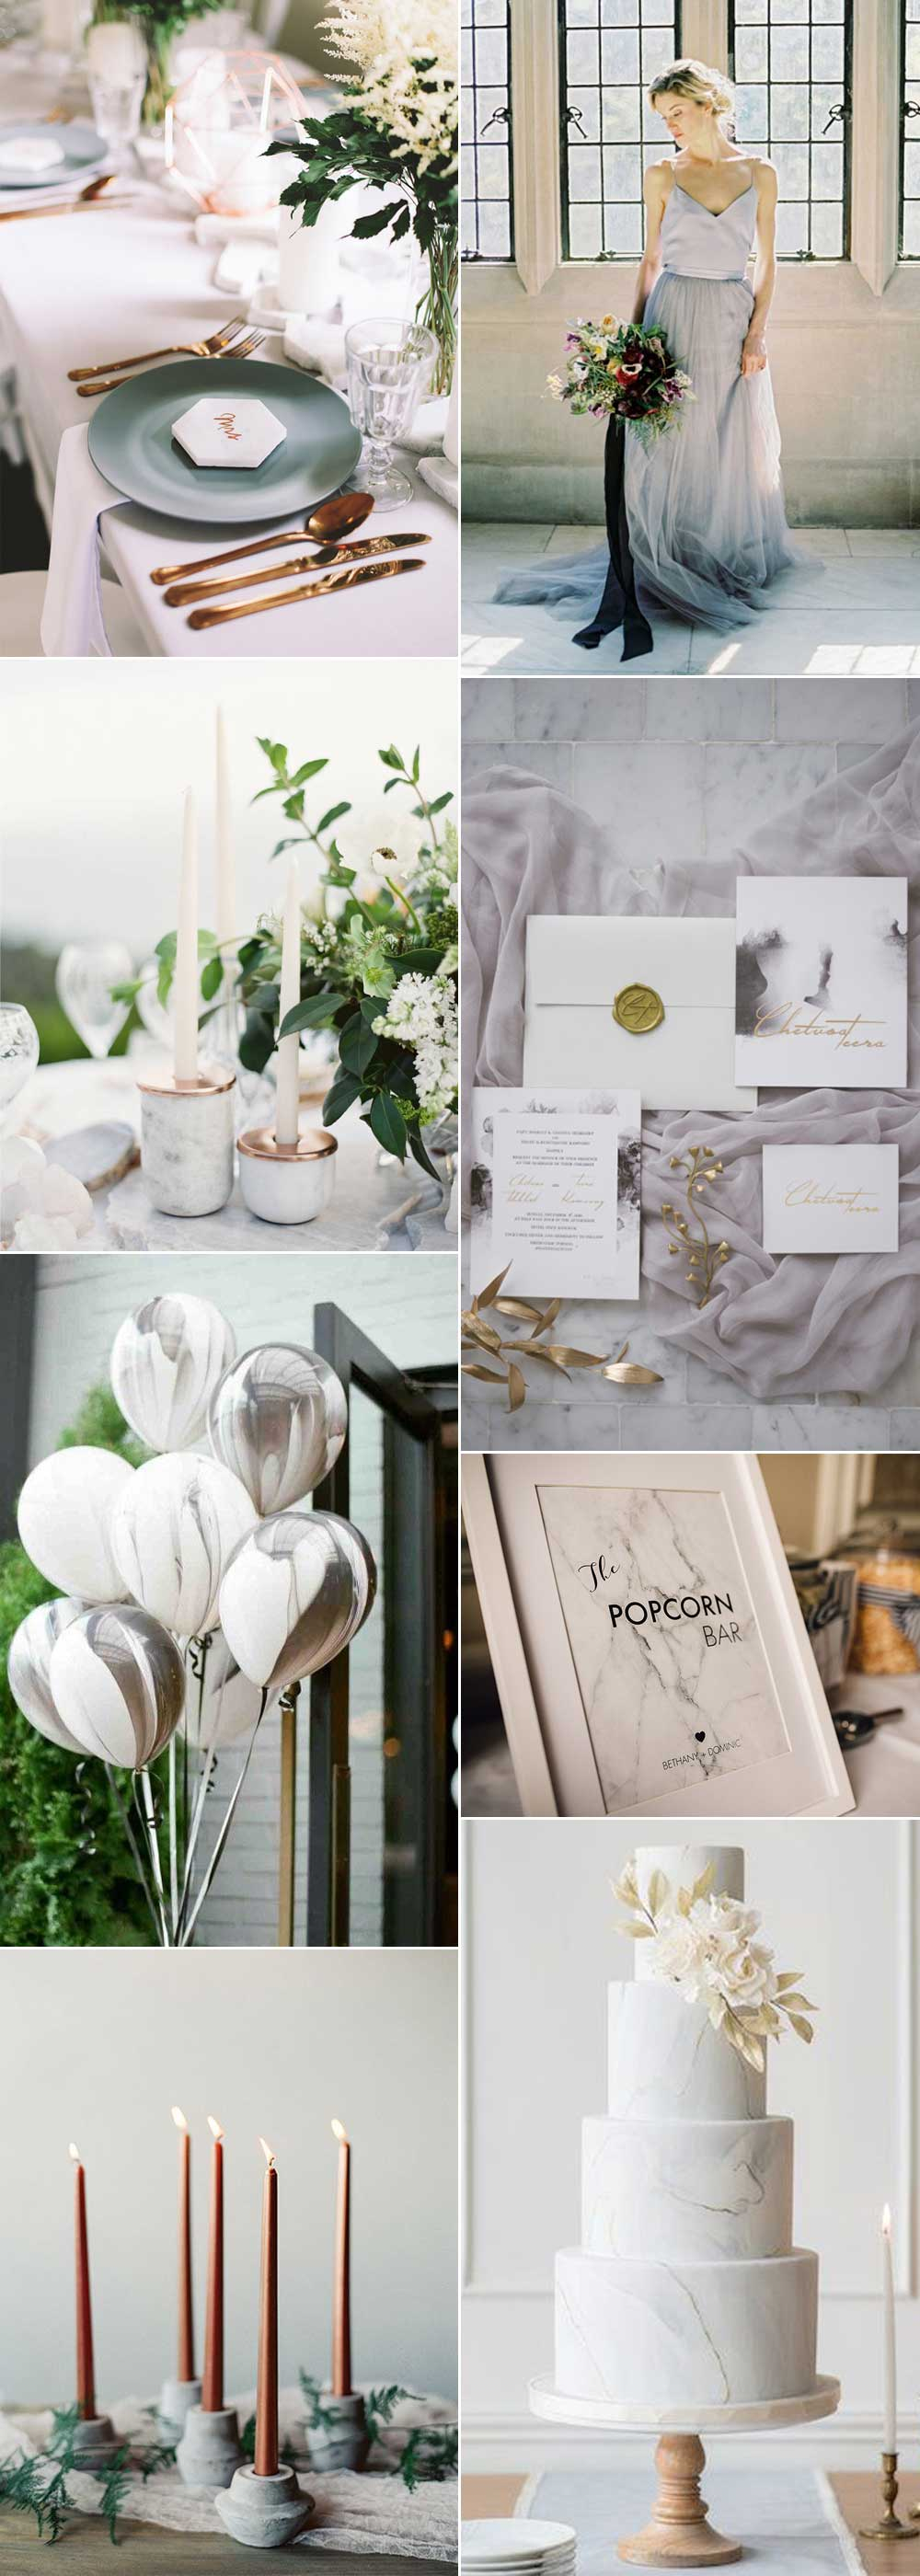 Ideas for a marble wedding theme